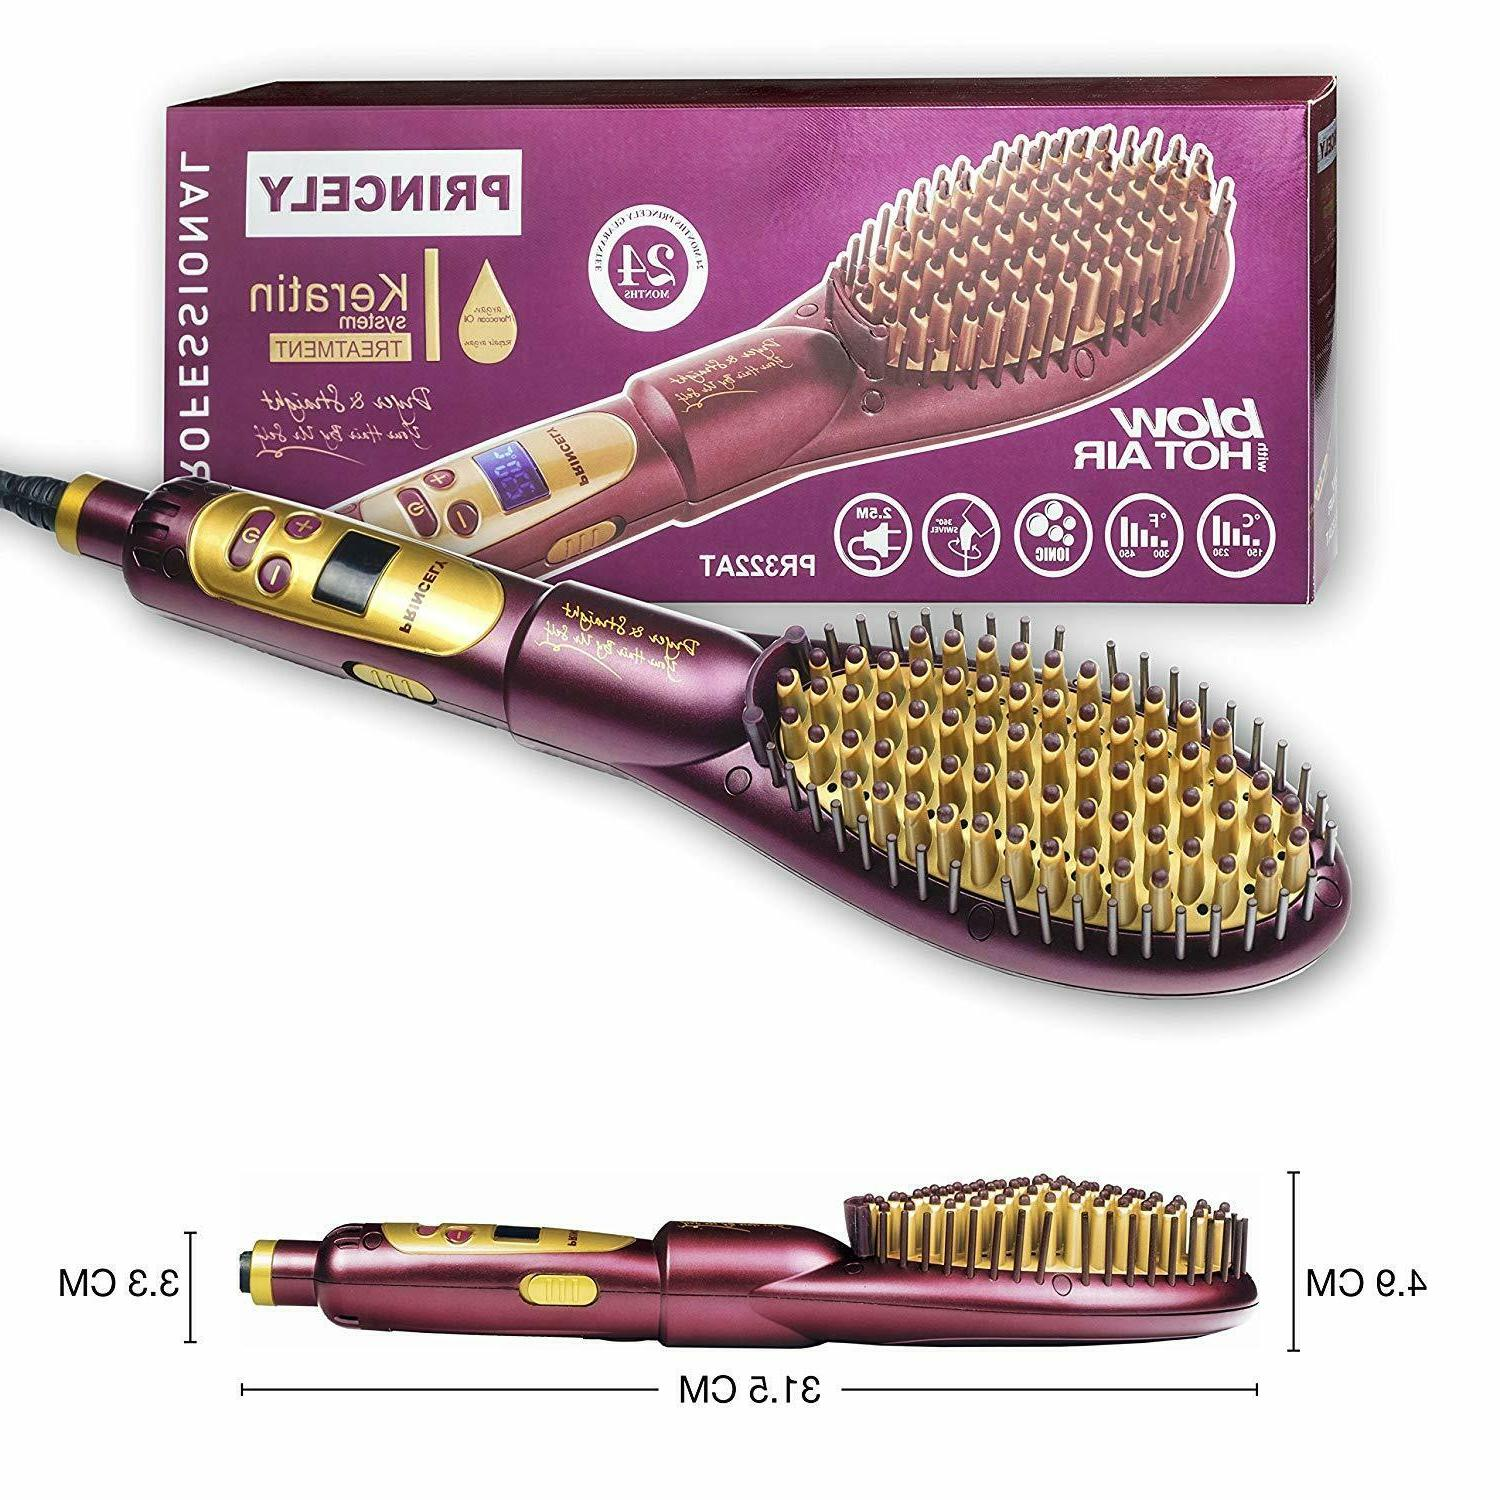 Princely 2 in 1 Ionic hair straightening brush,Hot Air